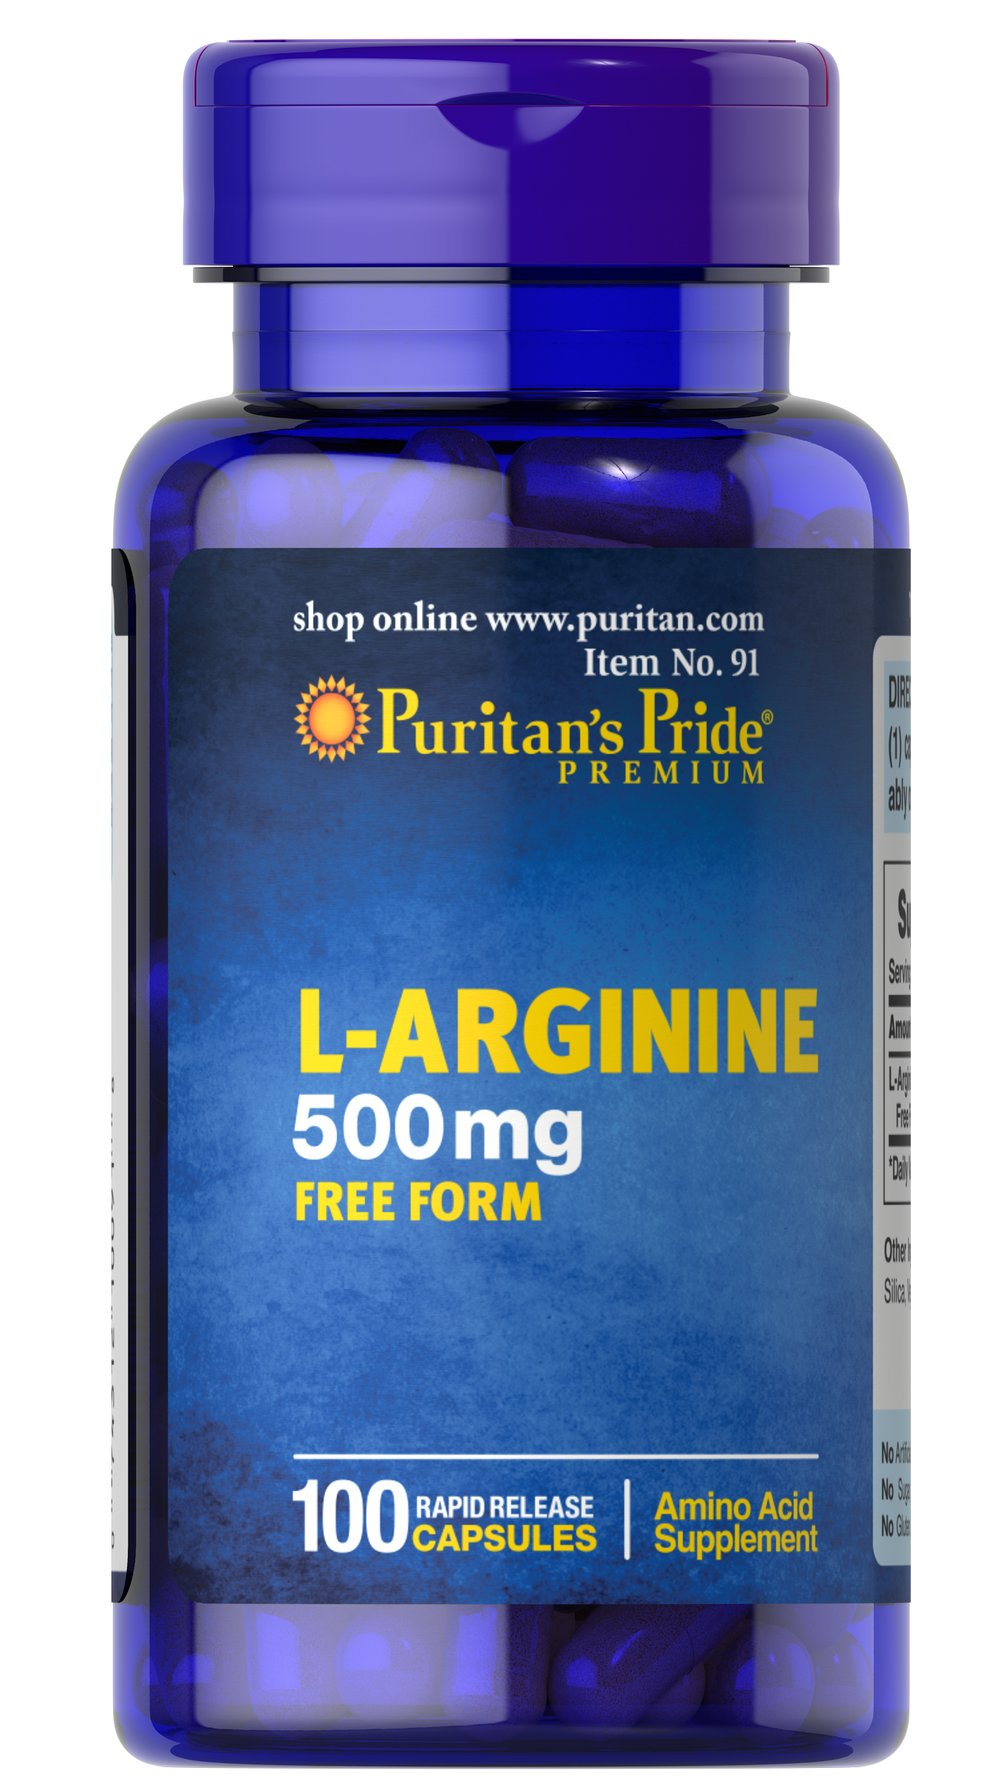 L-Arginine 500 mg <p>Arginine is one of 20 amino acids, the building blocks of protein.** Arginine can  serve as a source of energy, and is involved in various pathways throughout the body.** Arginine supports the effect of exercise and is one of the most important amino acids involved in immune function.** Adults can take one caplet daily. </p> 100 Capsules 500 mg $11.99